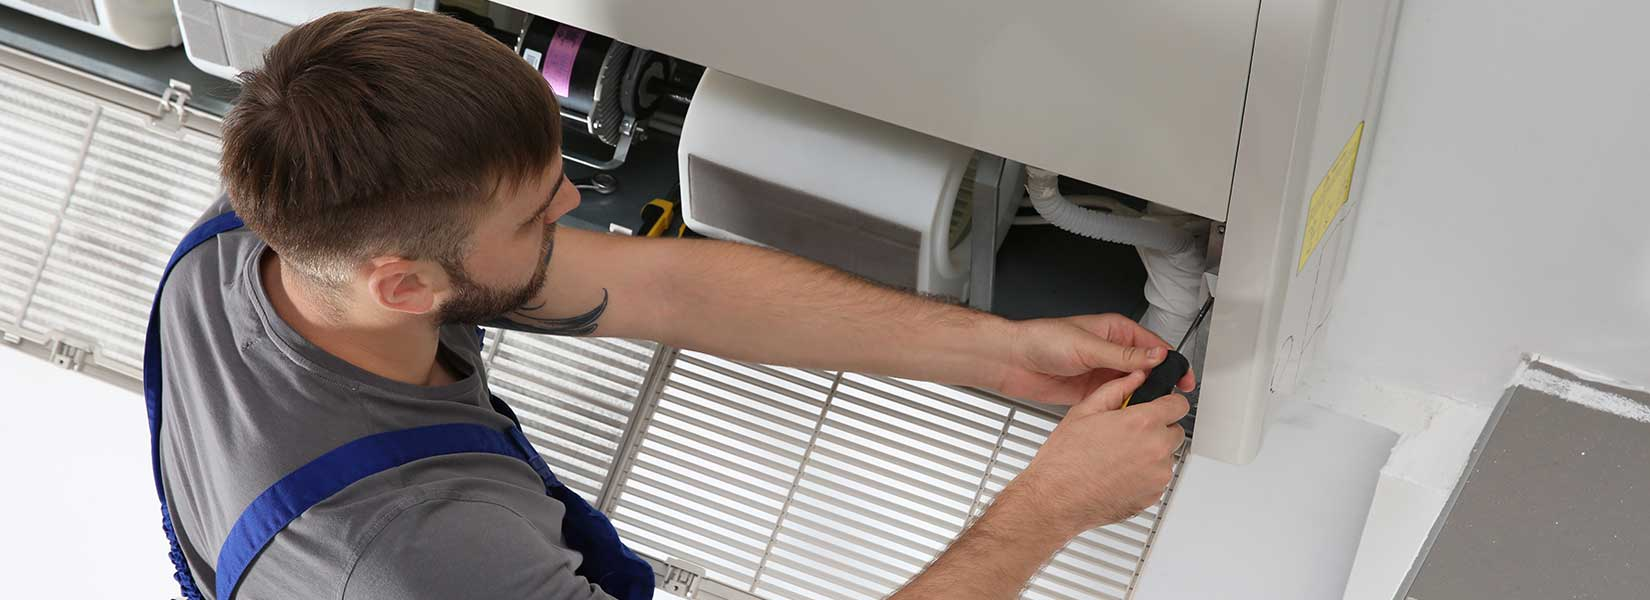 6 Things To Consider When Hiring An HVAC Contractor